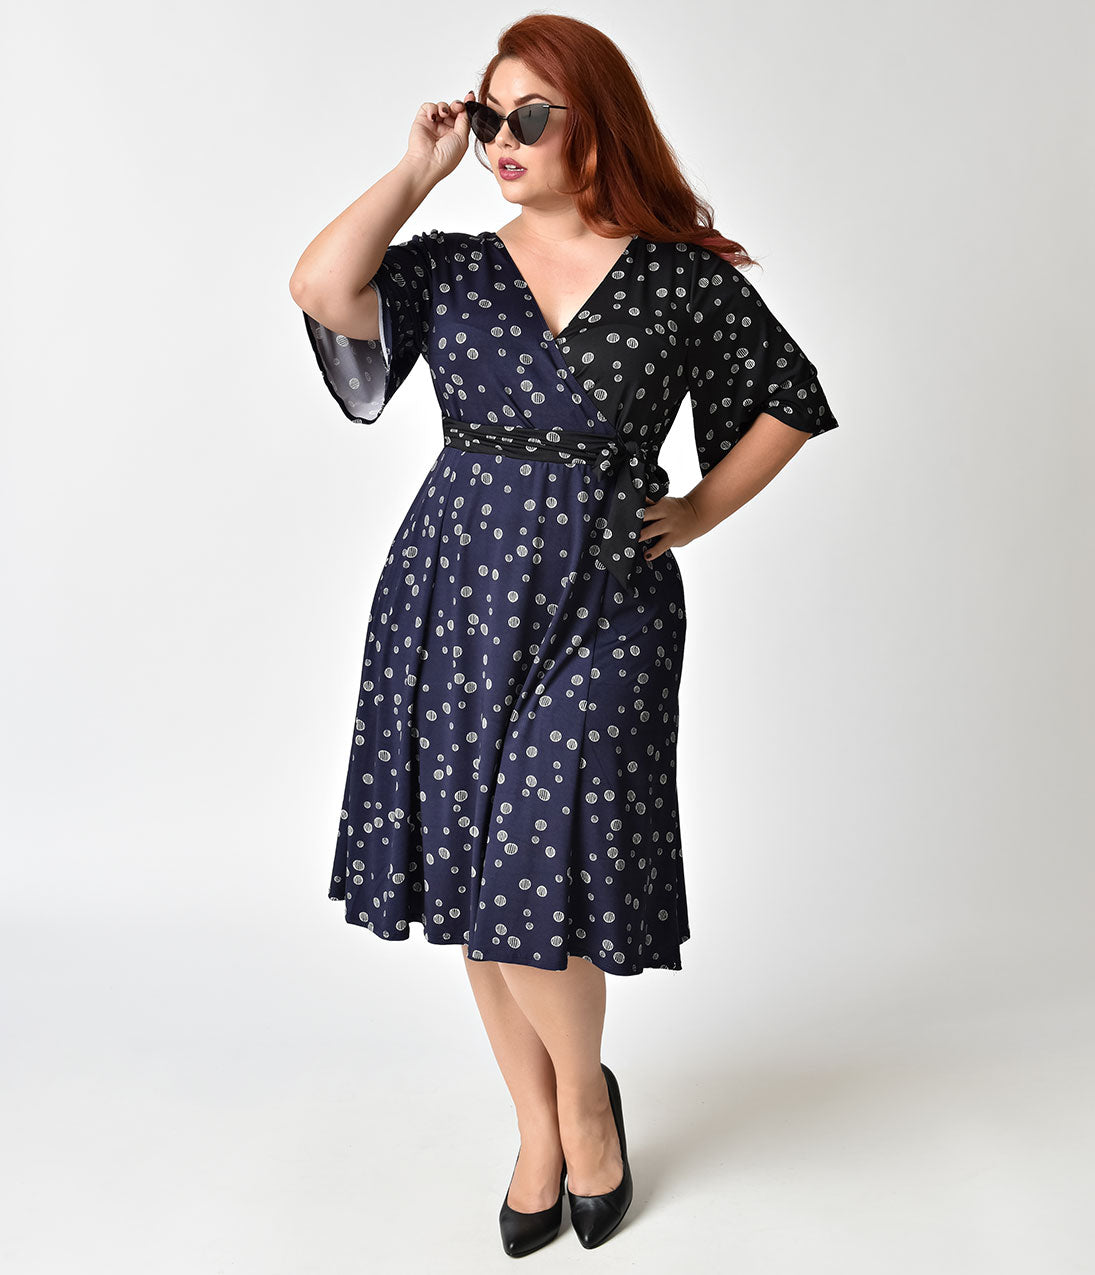 Polka Dot Dresses: 20s, 30s, 40s, 50s, 60s Plus Size Navy  Black Dot Mix Sleeved Aria Tie Wrap Dress $78.00 AT vintagedancer.com